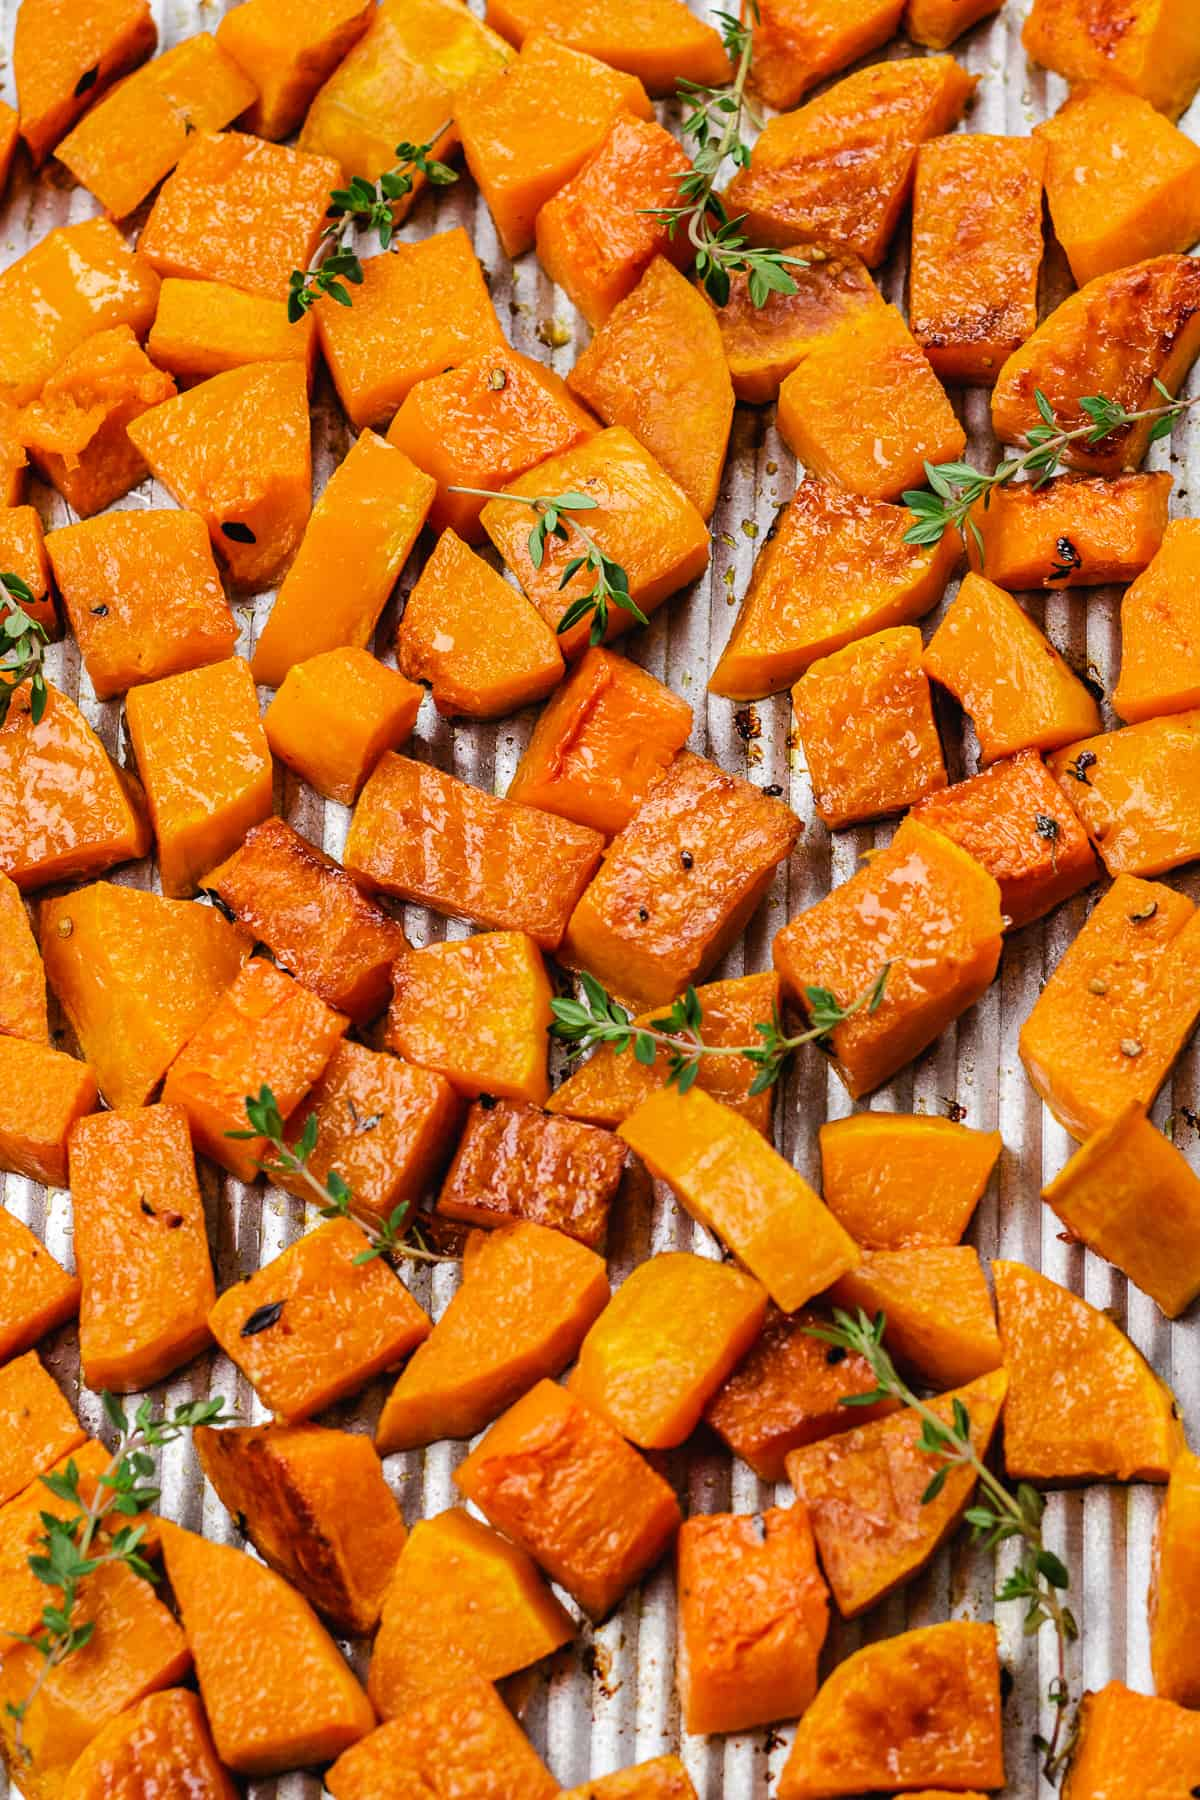 Cubed and Roasted Butternut Squash topped with thyme on a baking sheet.